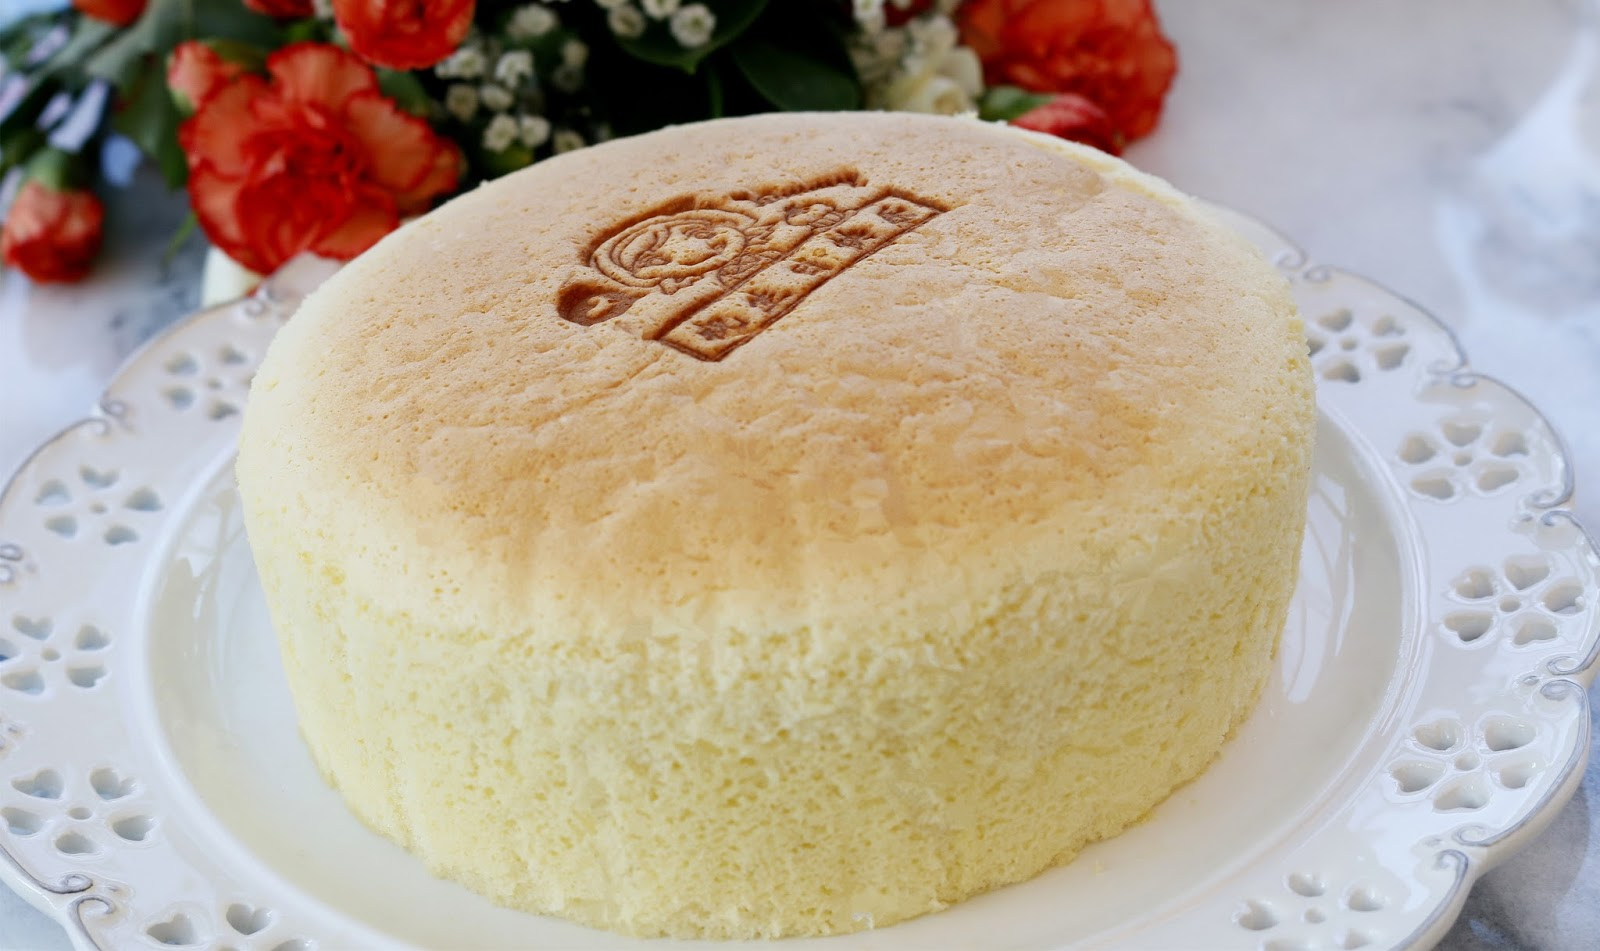 How To Make Simple Soft Sponge Cake